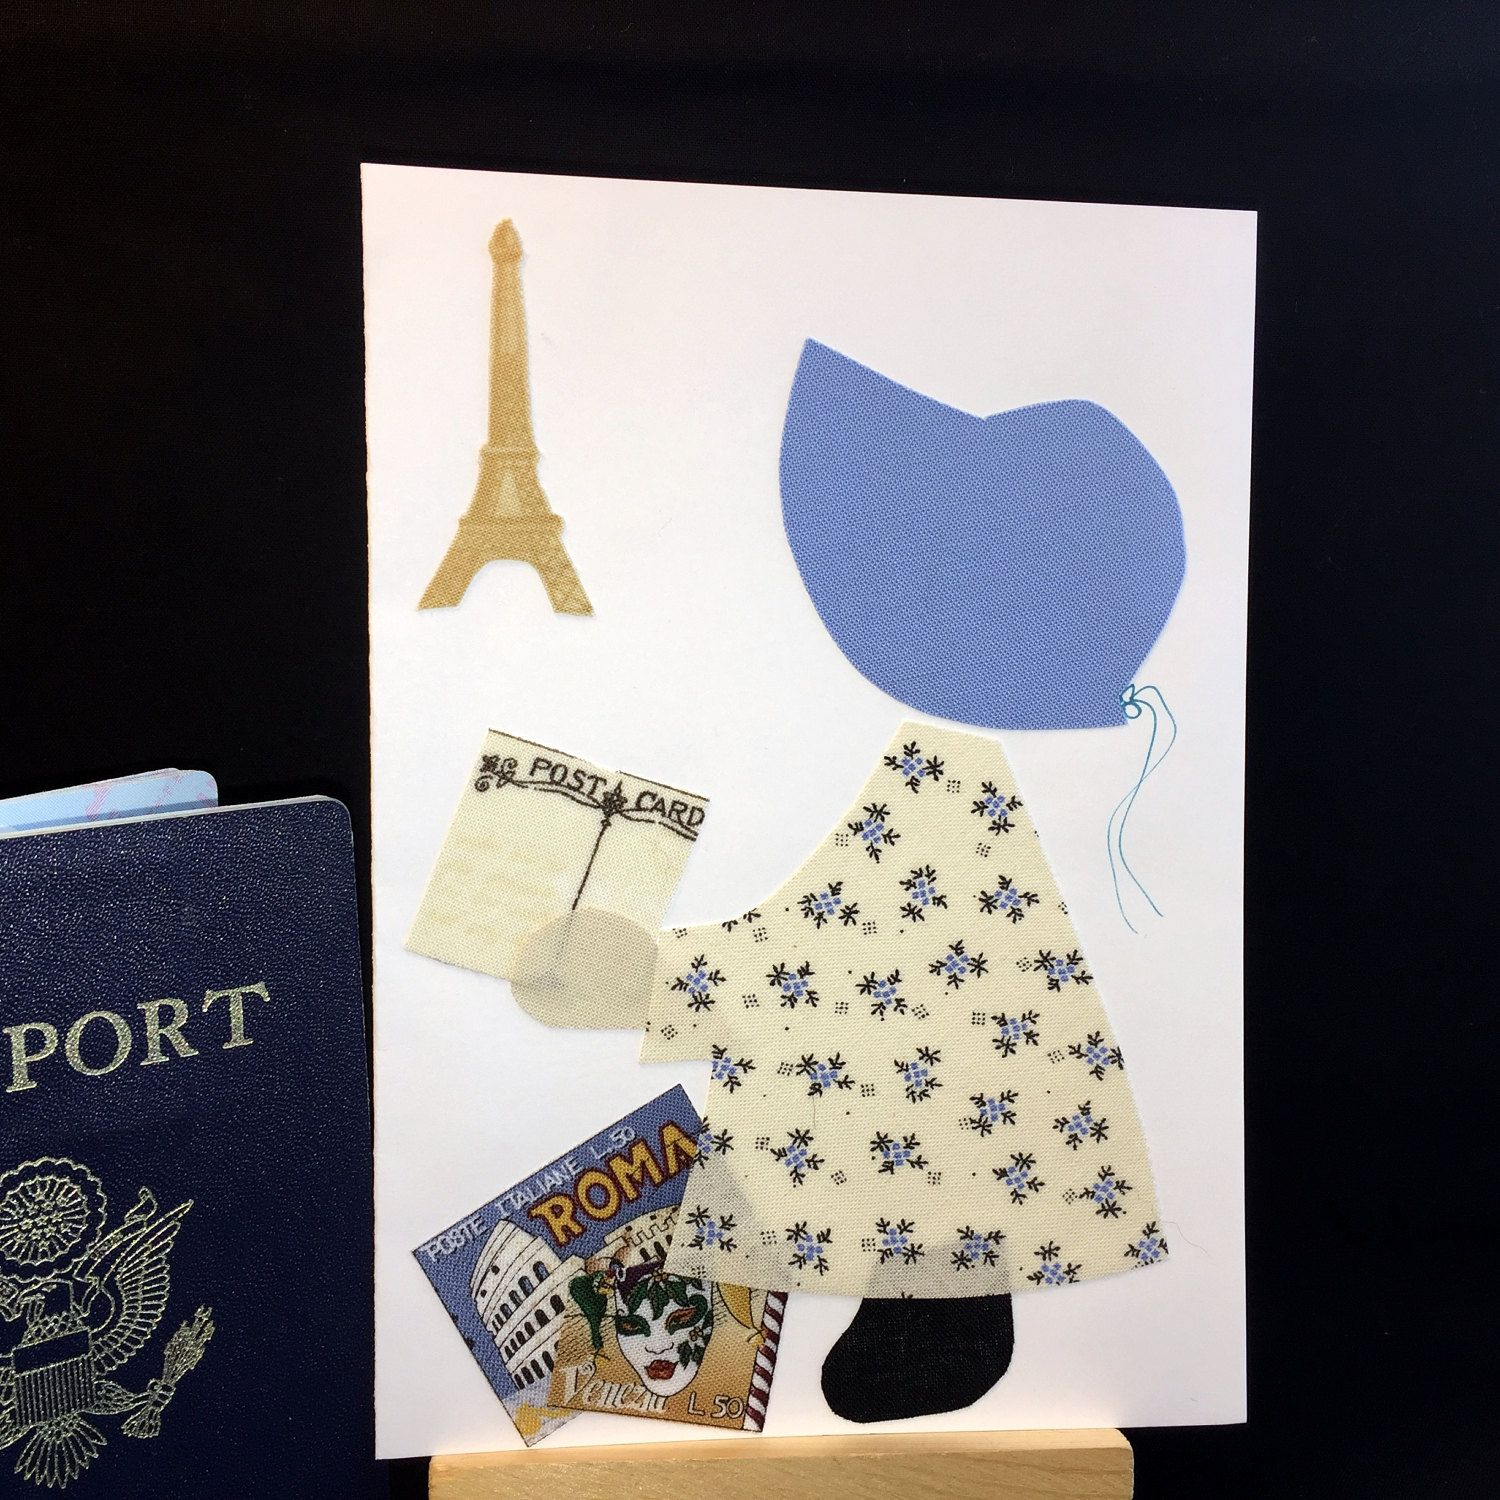 Ooak bon voyage card handmade recycled fabric greeting card ooak bon voyage card handmade recycled fabric greeting card blank card vacation card congratulations card retirement card anniversary kristyandbryce Image collections